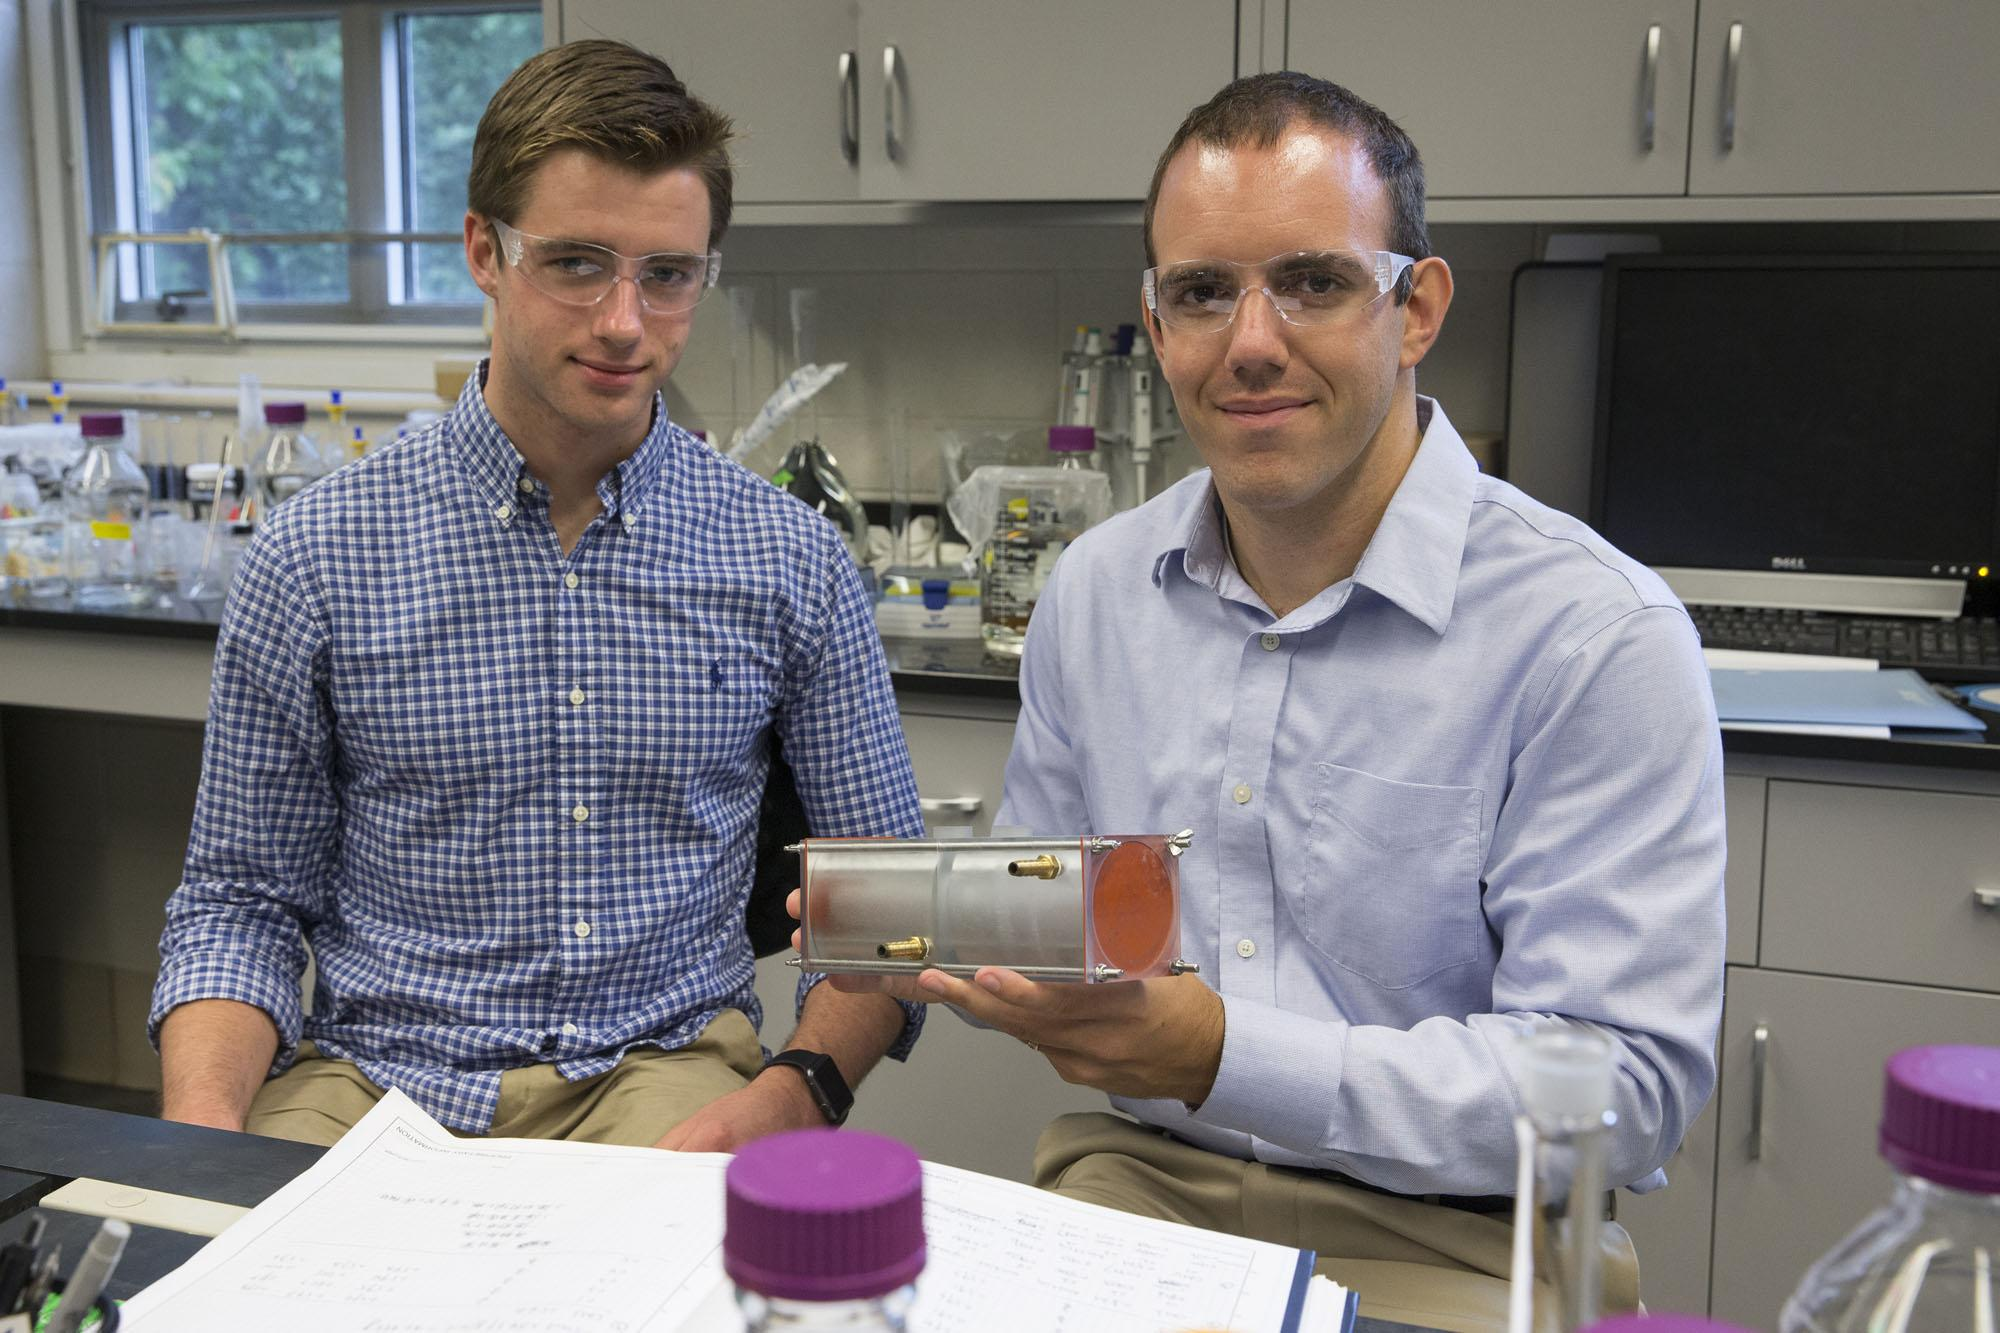 Chemical engineering major Andrew Biedermann (left), works on polymer membranes with Geoffrey Geise, an assistant professor in the Department of Chemical Engineering. Photo by Dan Addison / University Communications.